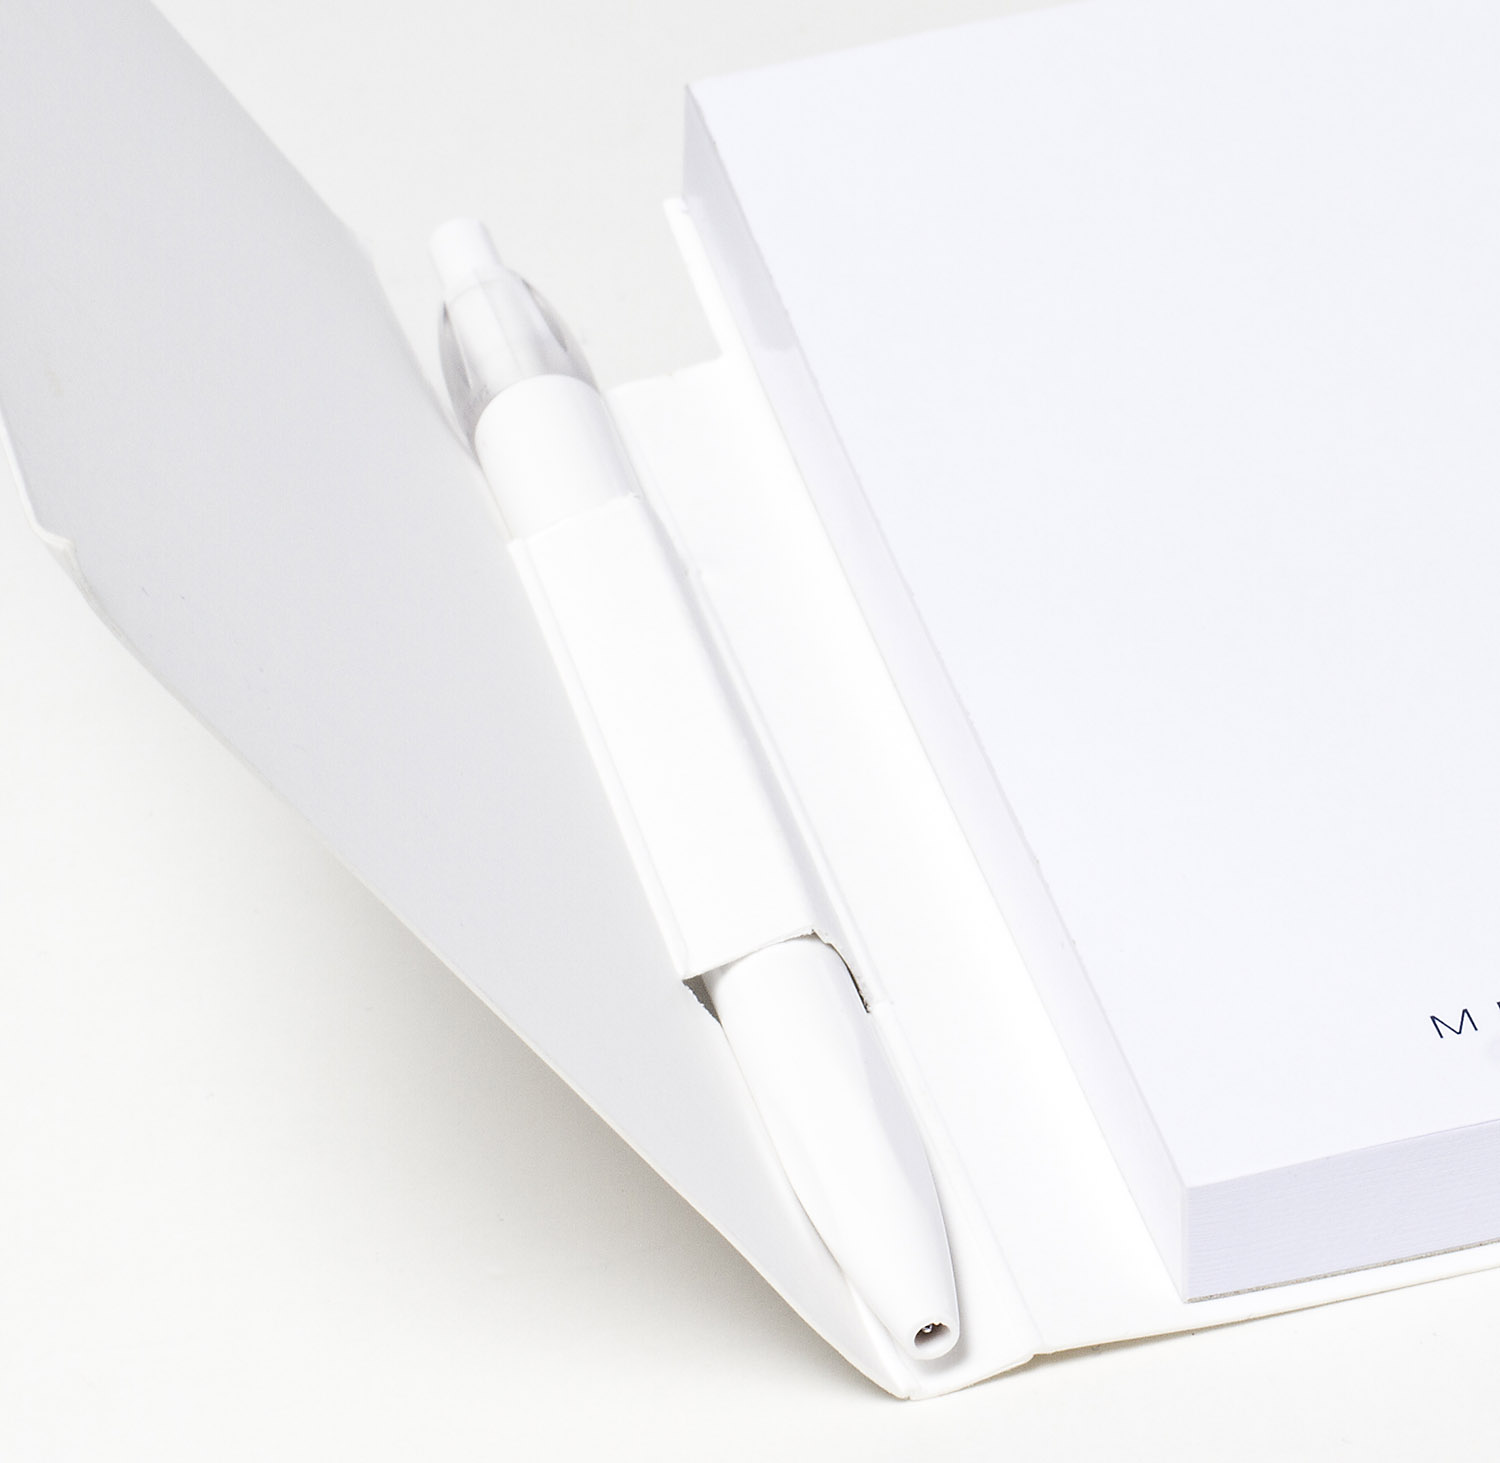 1.4 Adhesive note pads with pen (pencil) ANP-14 (ANP-14M)